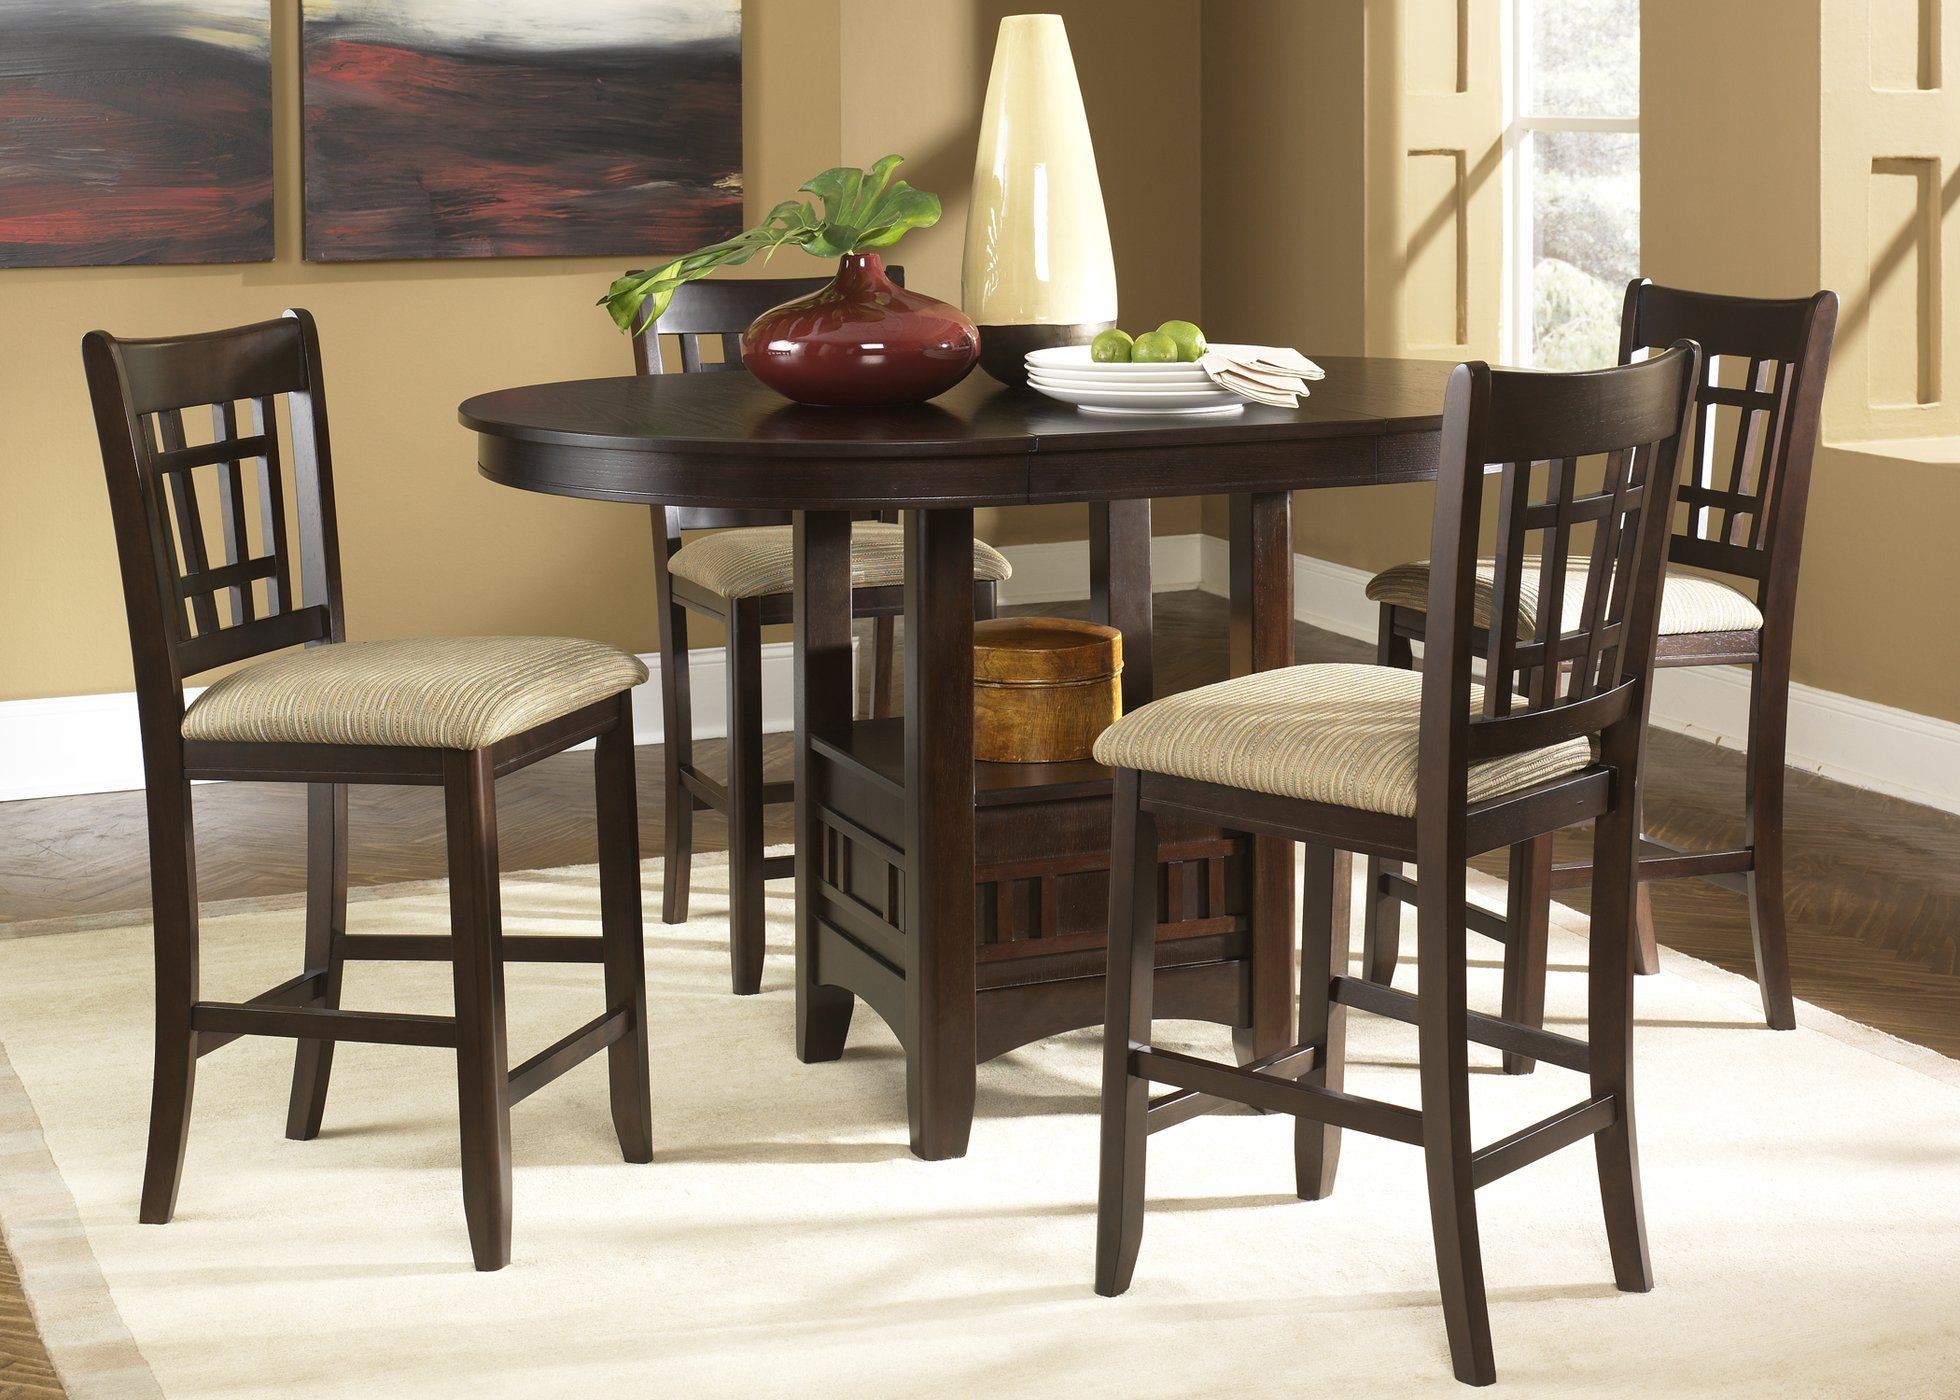 Santa Rosa Casual Dining 5 Piece Pub Set Pub Table And Chairs